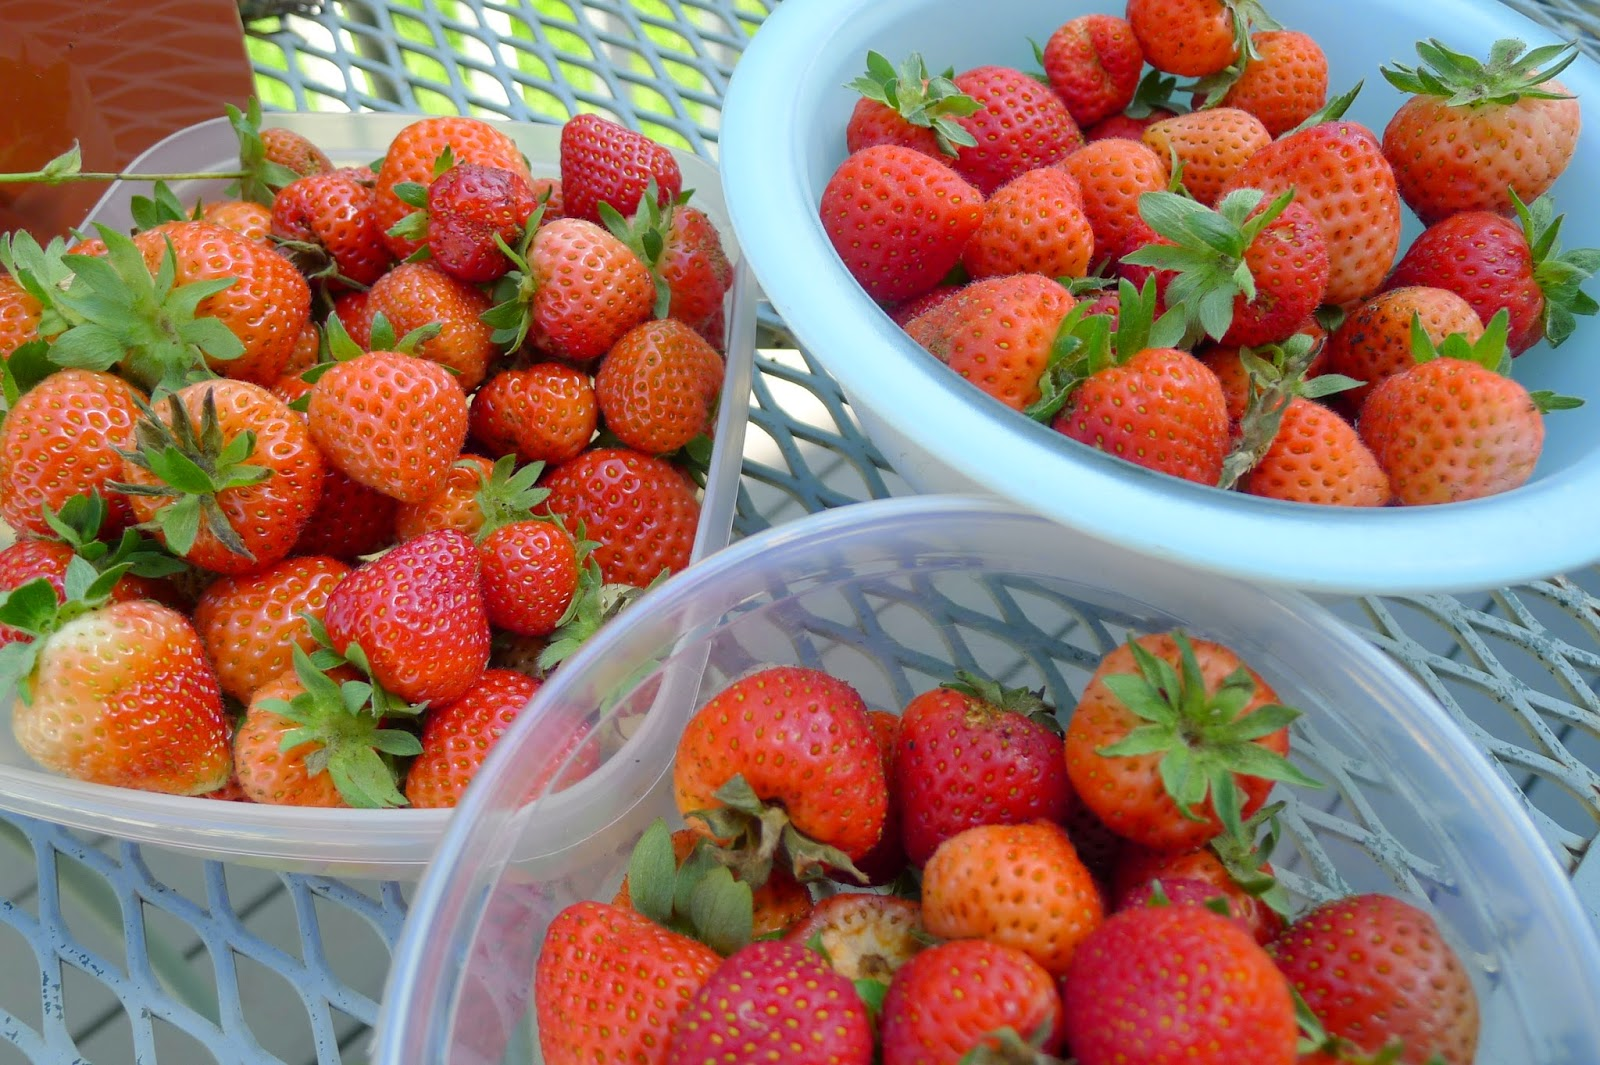 Strawberries, recipe ideas for strawberries